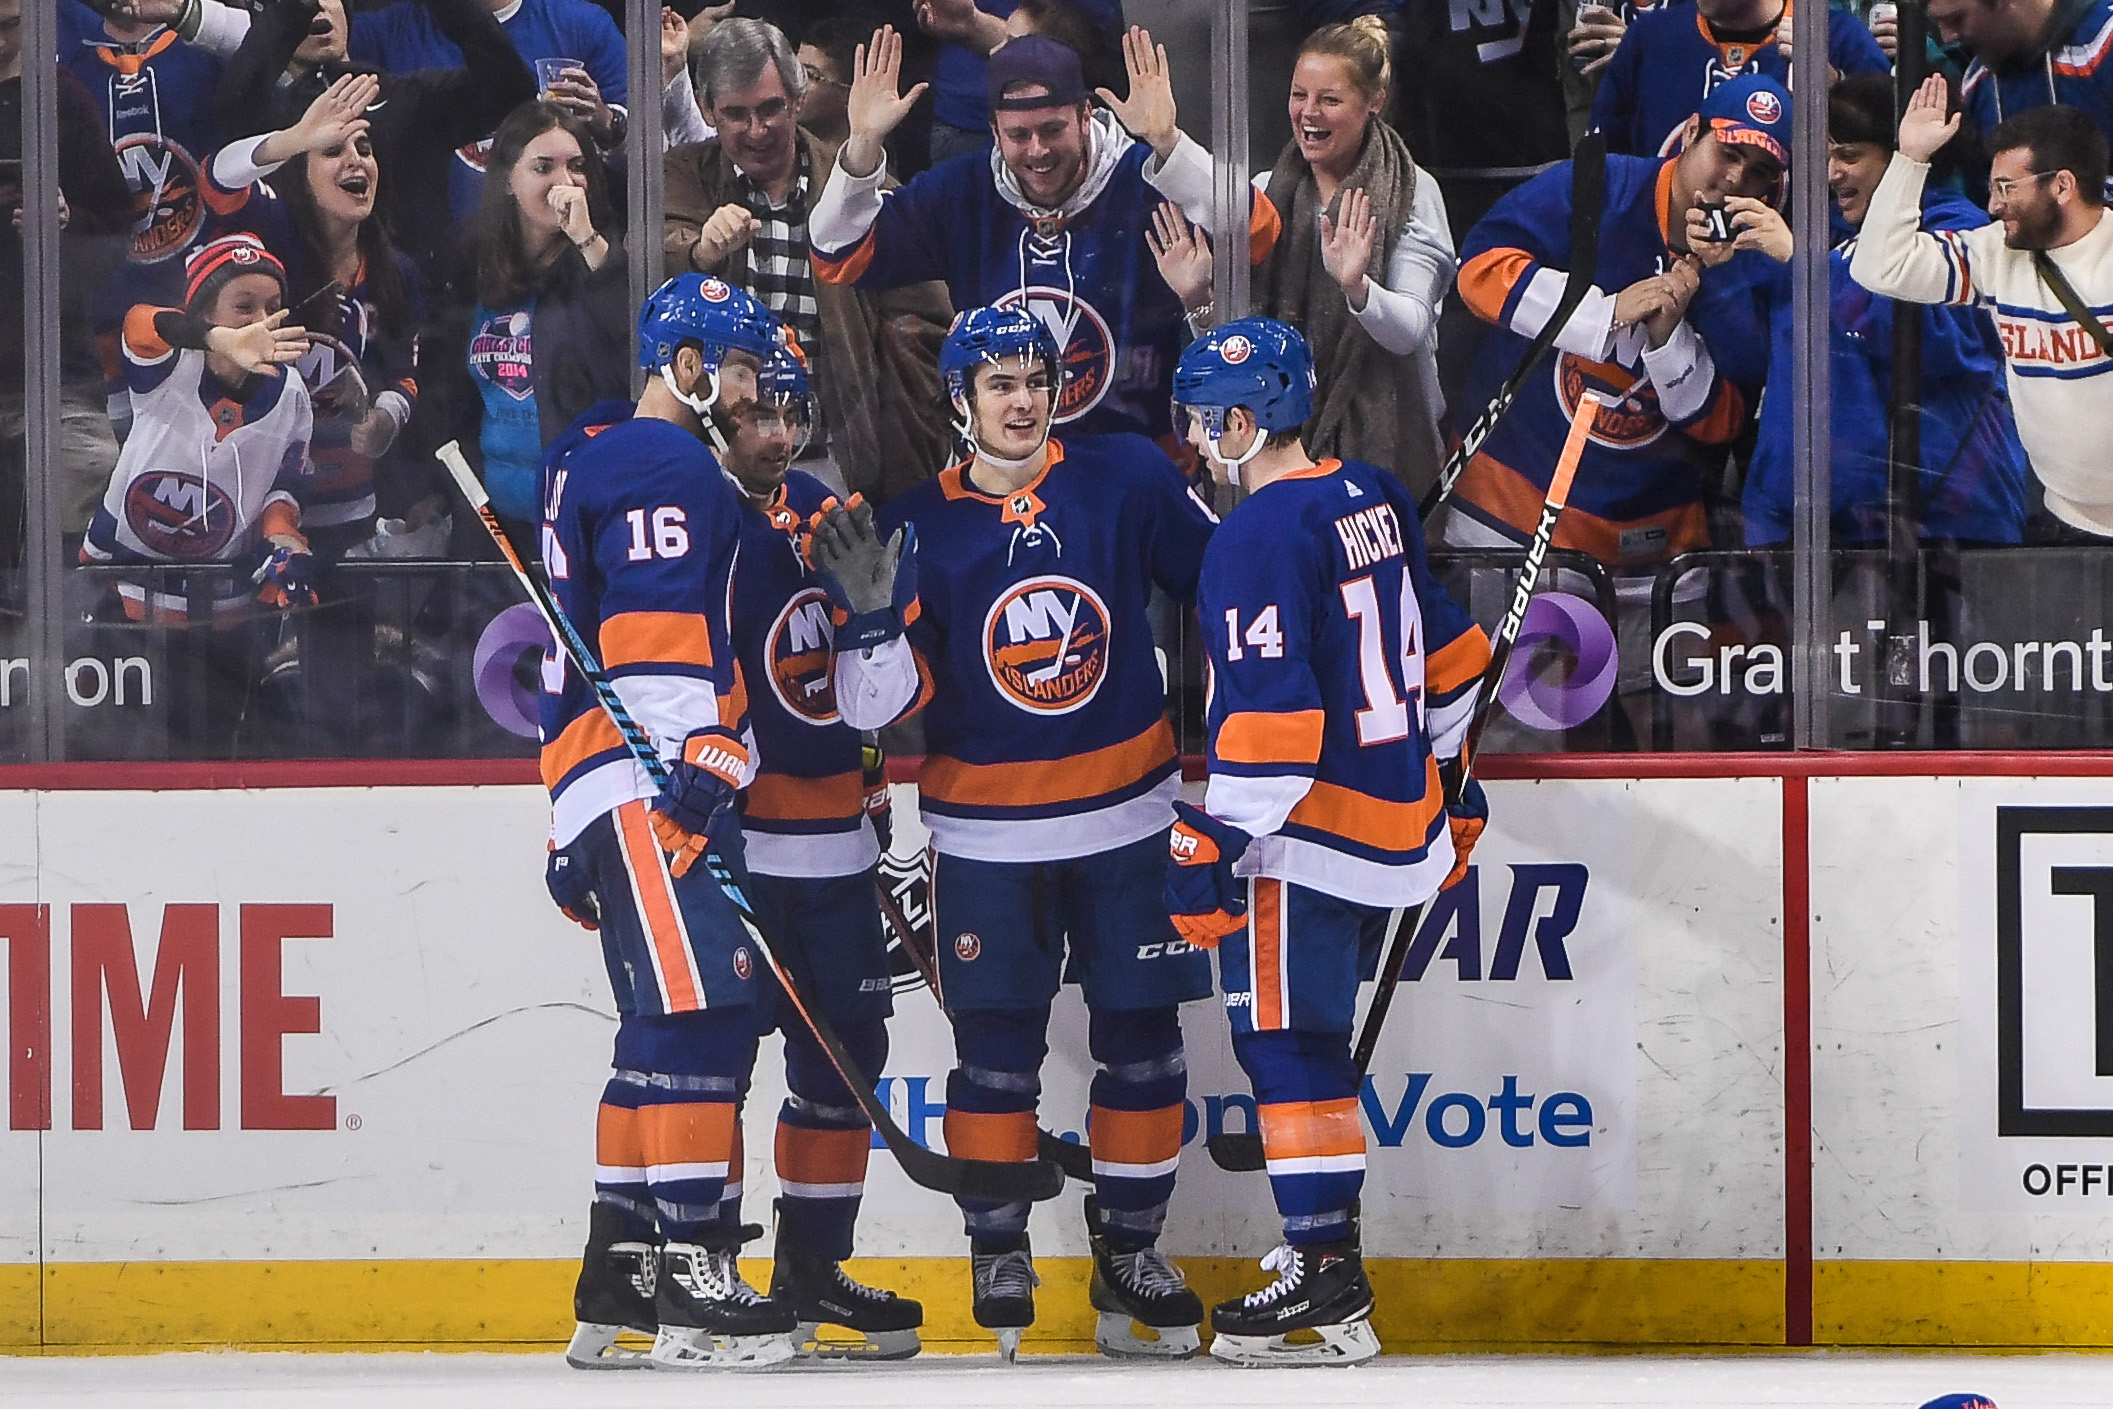 Dec 23, 2017; Brooklyn, NY, USA; New York Islanders center Mathew Barzal (13) celebrates his first hat trick during the third period between the New York Islanders and the Winnipeg Jets at Barclays Center. Mandatory Credit: Dennis Schneidler-USA TODAY Sports